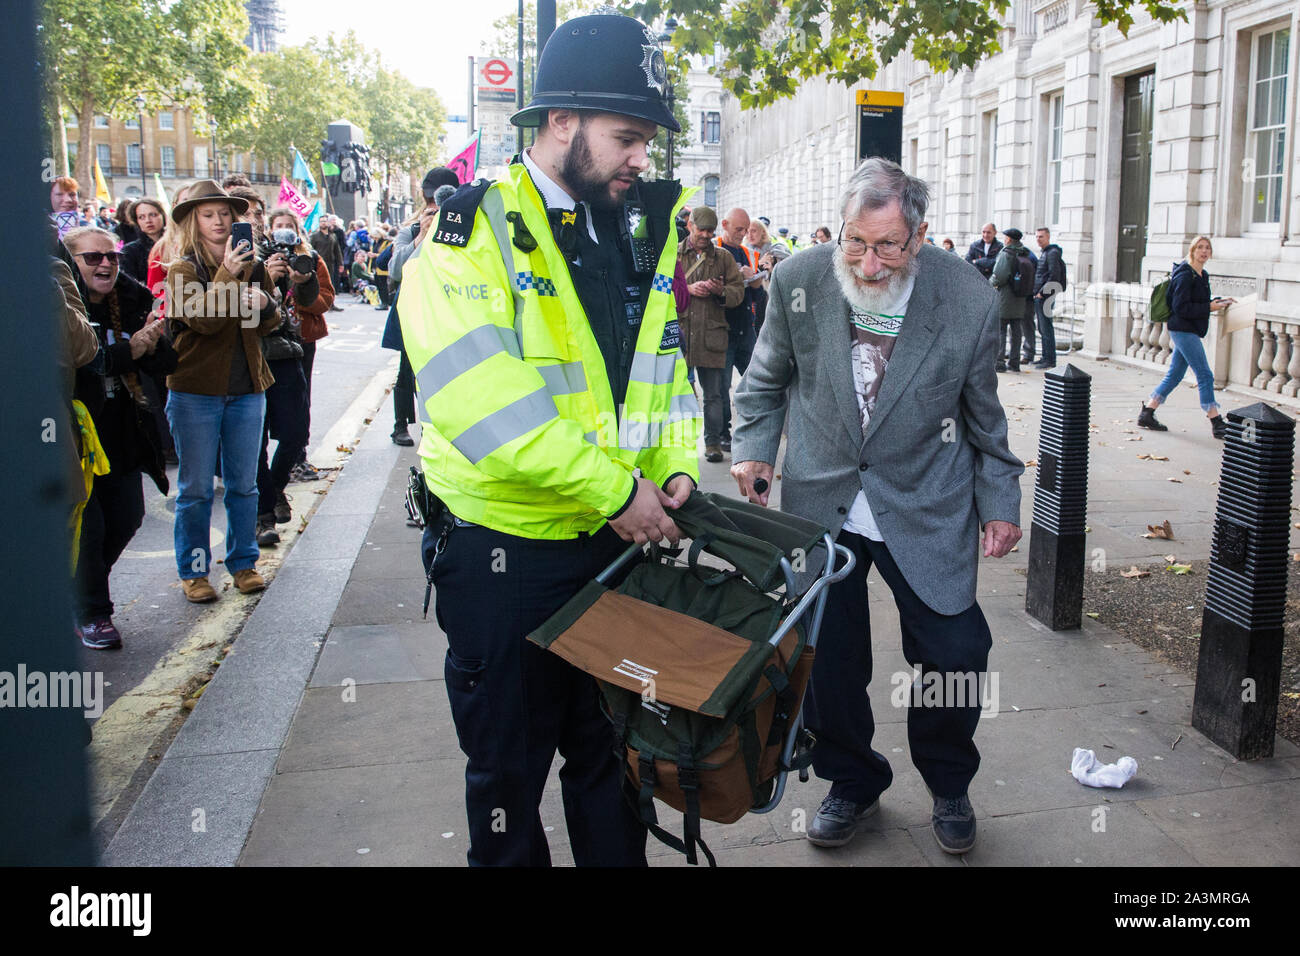 London, UK. 9 October, 2019. John Lynes, a 91-year-old climate activist from Extinction Rebellion is arrested by police officers using Section 14 of the Public Order Act 1986 after blocking Whitehall on the third day of International Rebellion protests to demand a government declaration of a climate and ecological emergency, a commitment to halting biodiversity loss and net zero carbon emissions by 2025 and for the government to create and be led by the decisions of a Citizens' Assembly on climate and ecological justice. Credit: Mark Kerrison/Alamy Live News Stock Photo